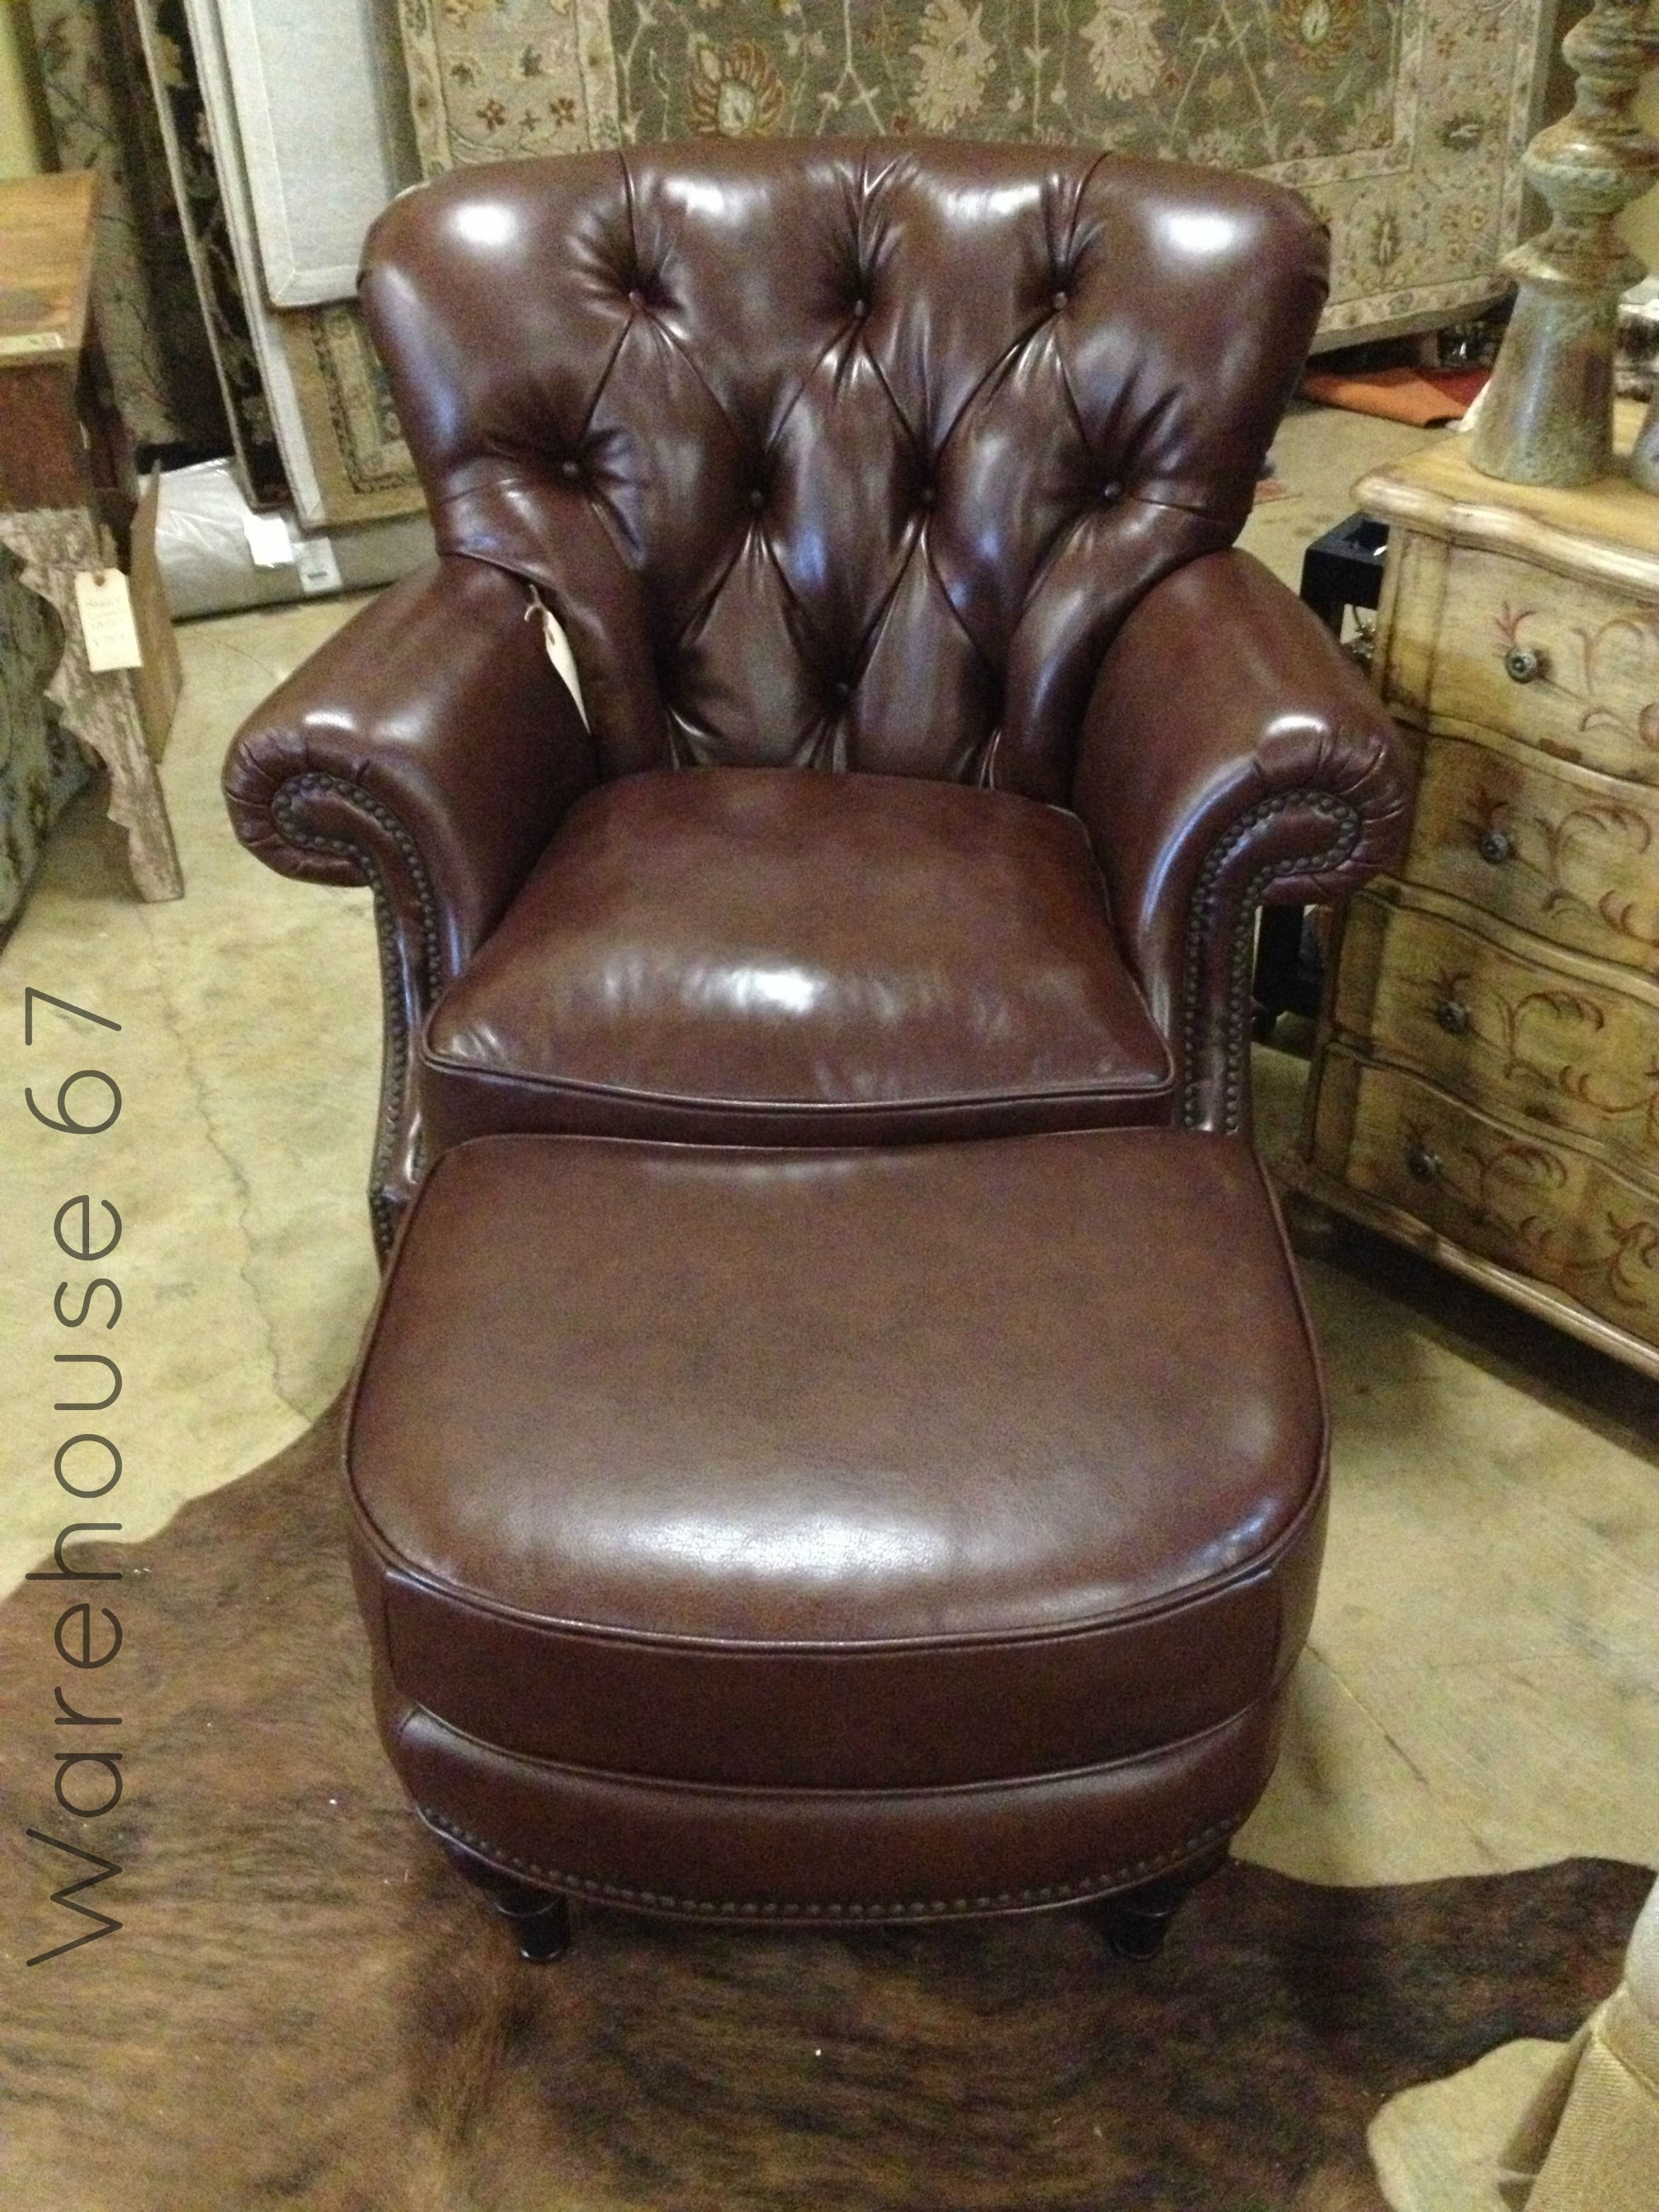 Italian Leather Tufted Chair with Ottoman here at Warehouse 67! Only $1499! www.warehouse67design.com